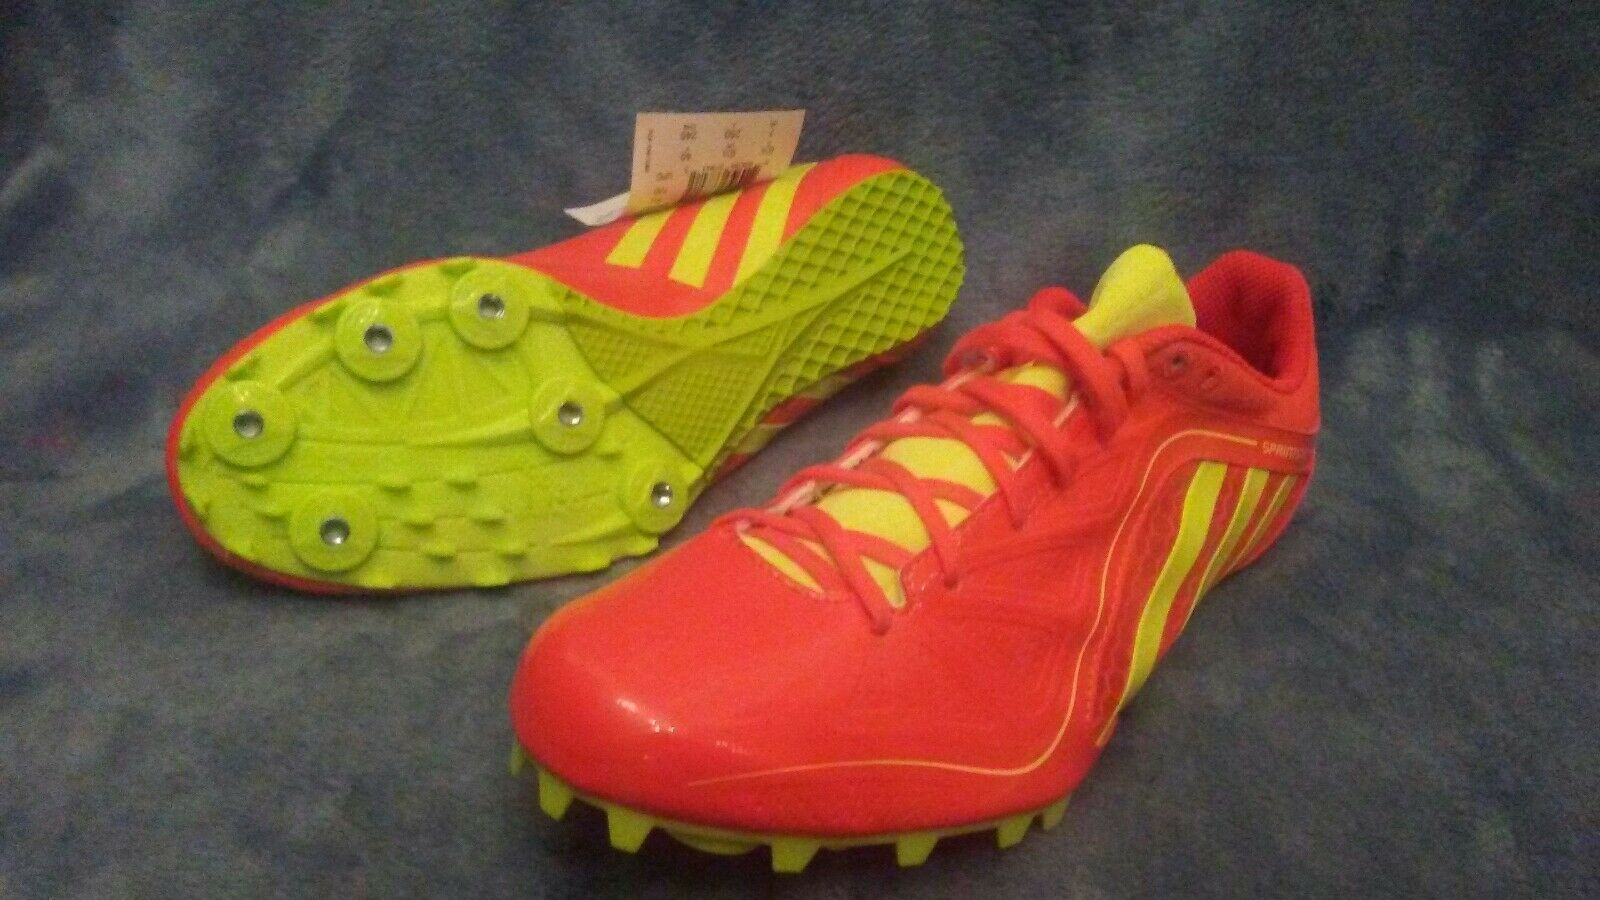 NIB ADIDAS SPRINTSTAR 3 Track and Field Cleats-Shoes Orange-Yellow Men Size 11.5